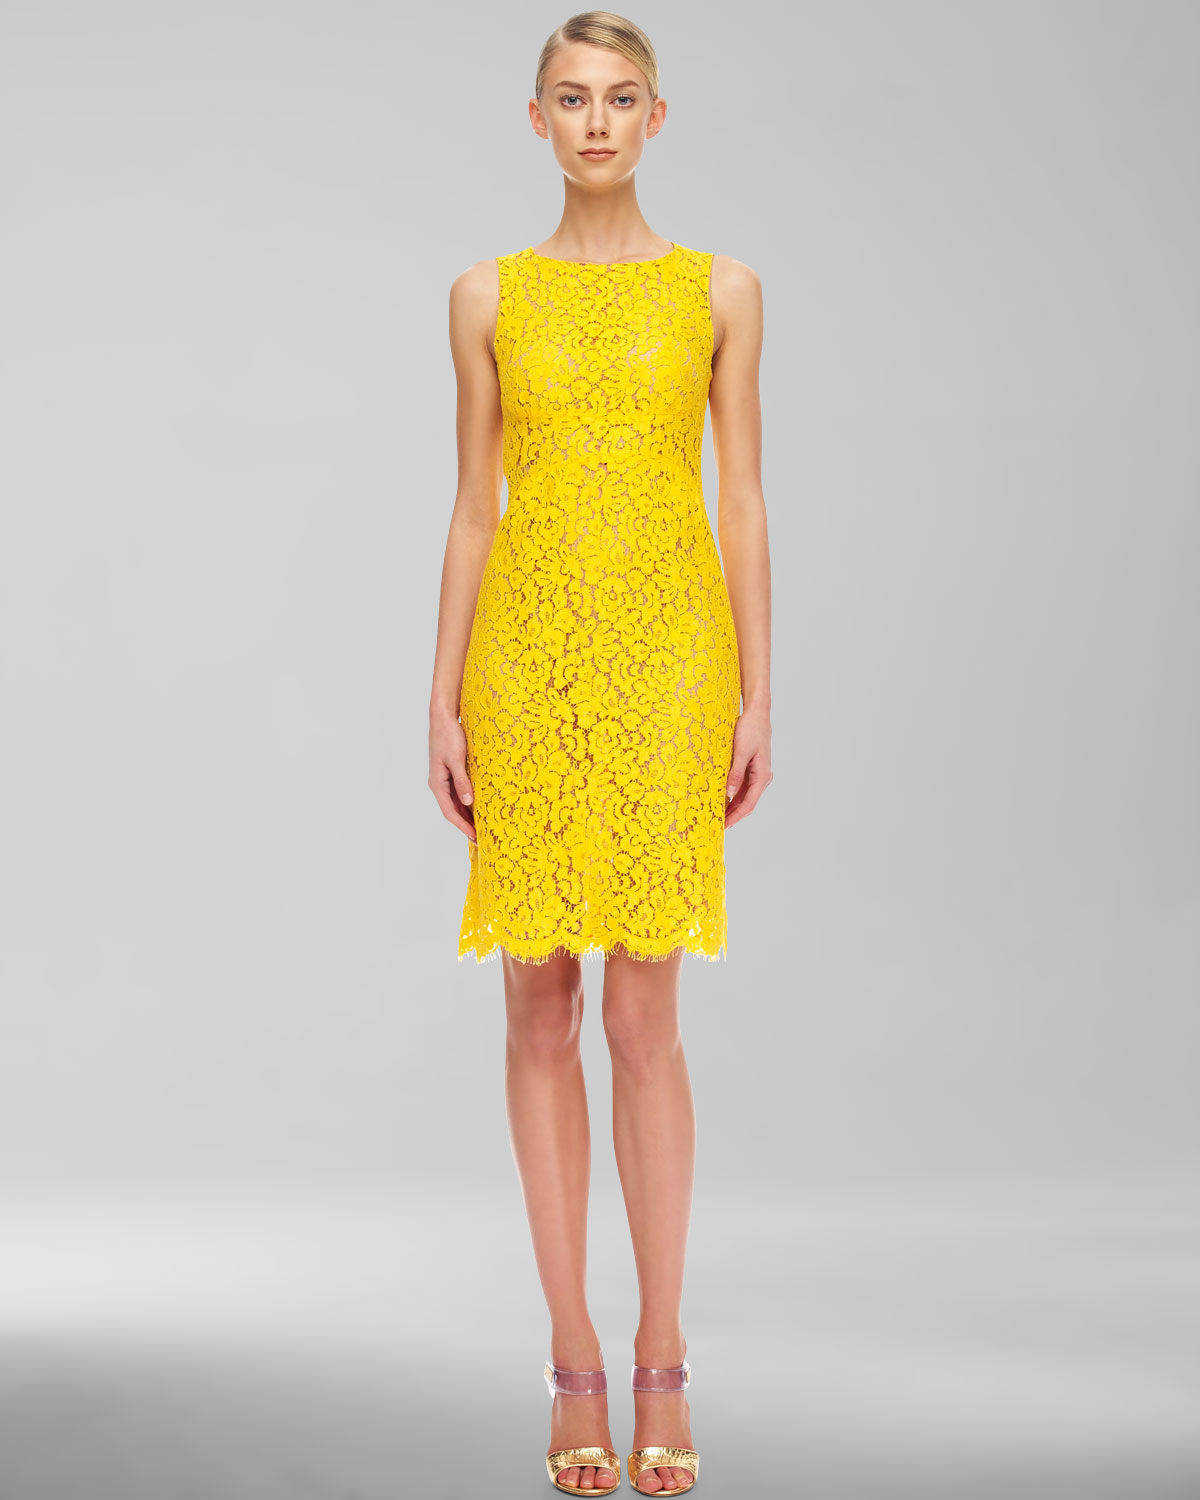 Lyst - Michael Kors Floral Lace Empire Shift Dress in Yellow